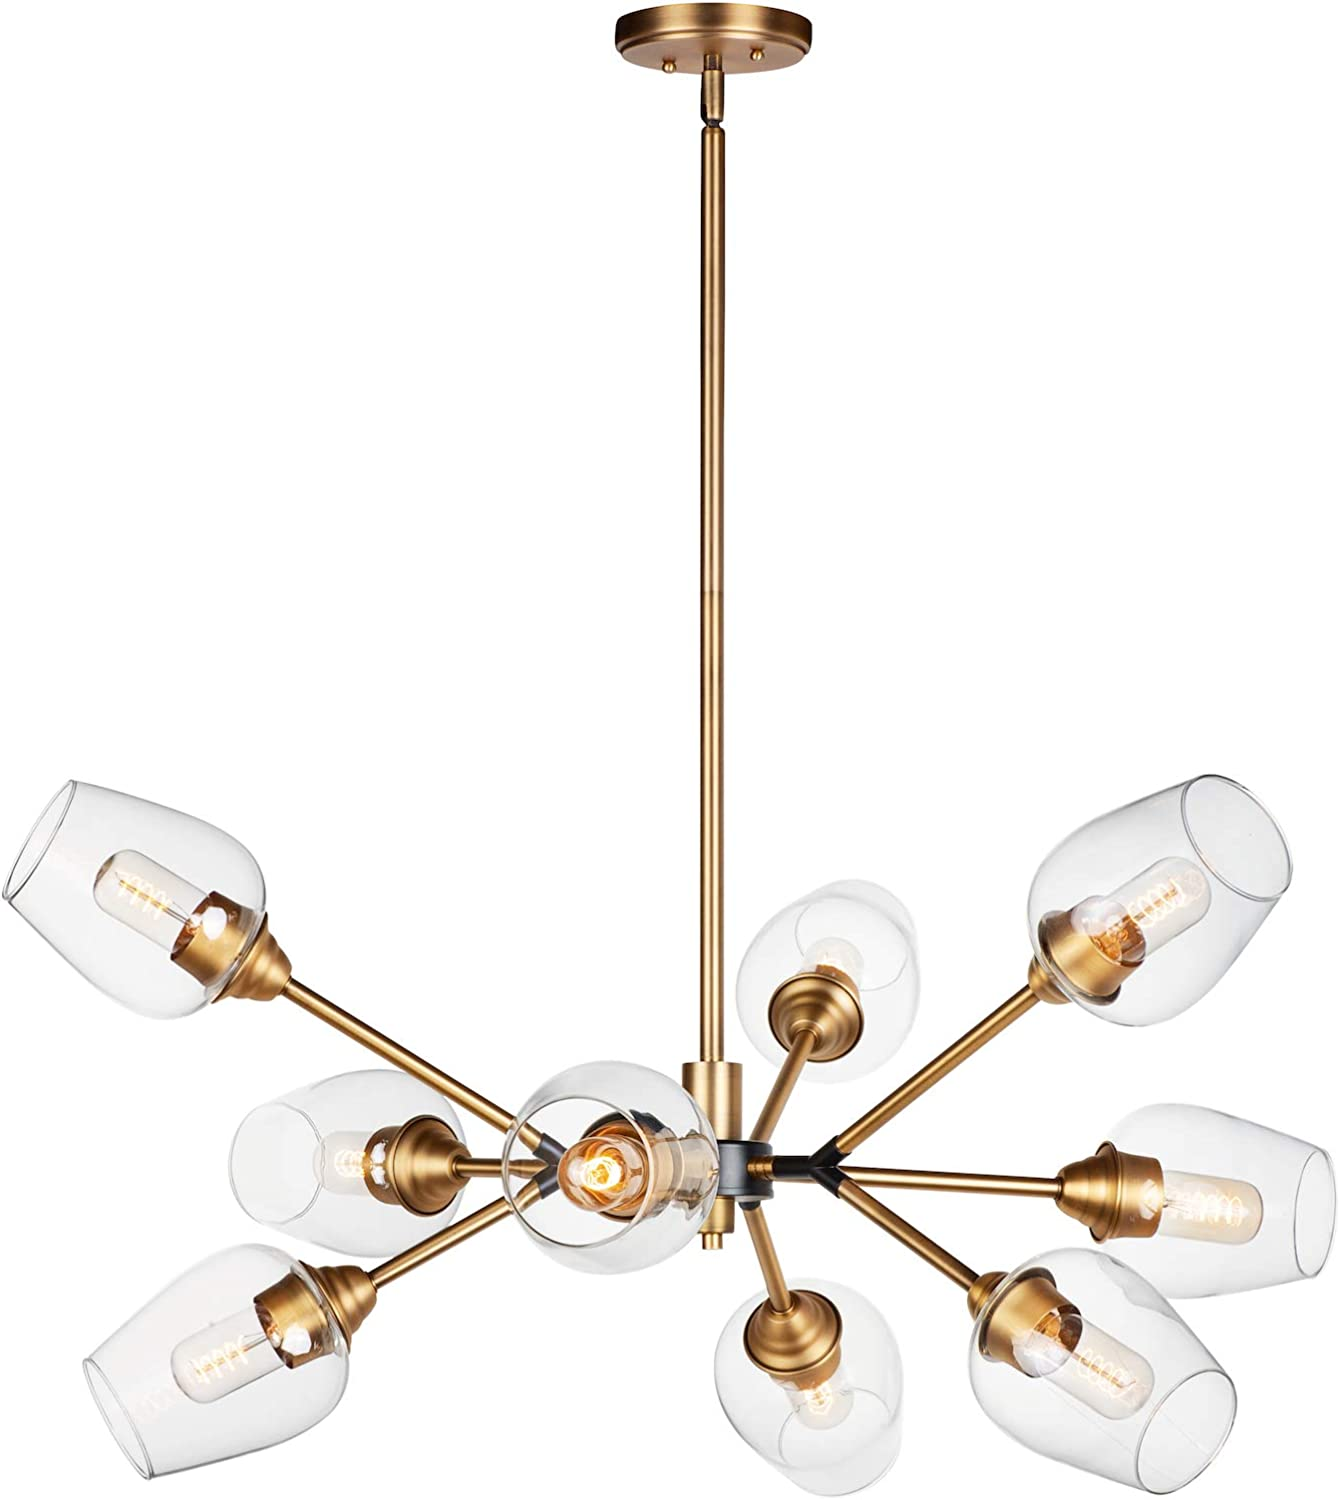 Branded Factory outlet goods Savvy 9-Light Chandelier